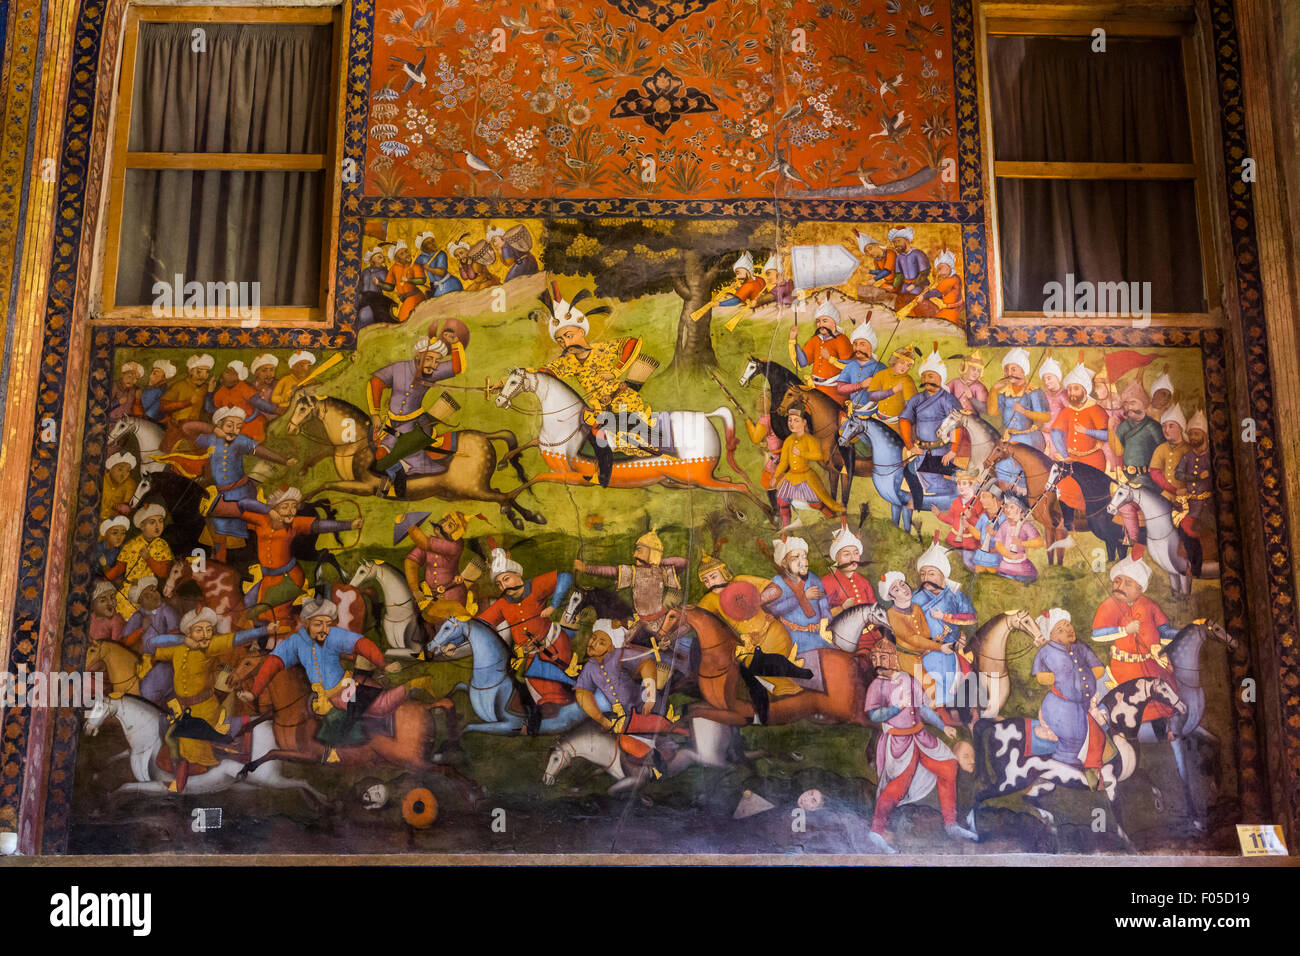 painting of the battle of Shah Isma'il and the Uzbeks, Chehel Sutun Palace, Isfahan, Iran Stock Photo